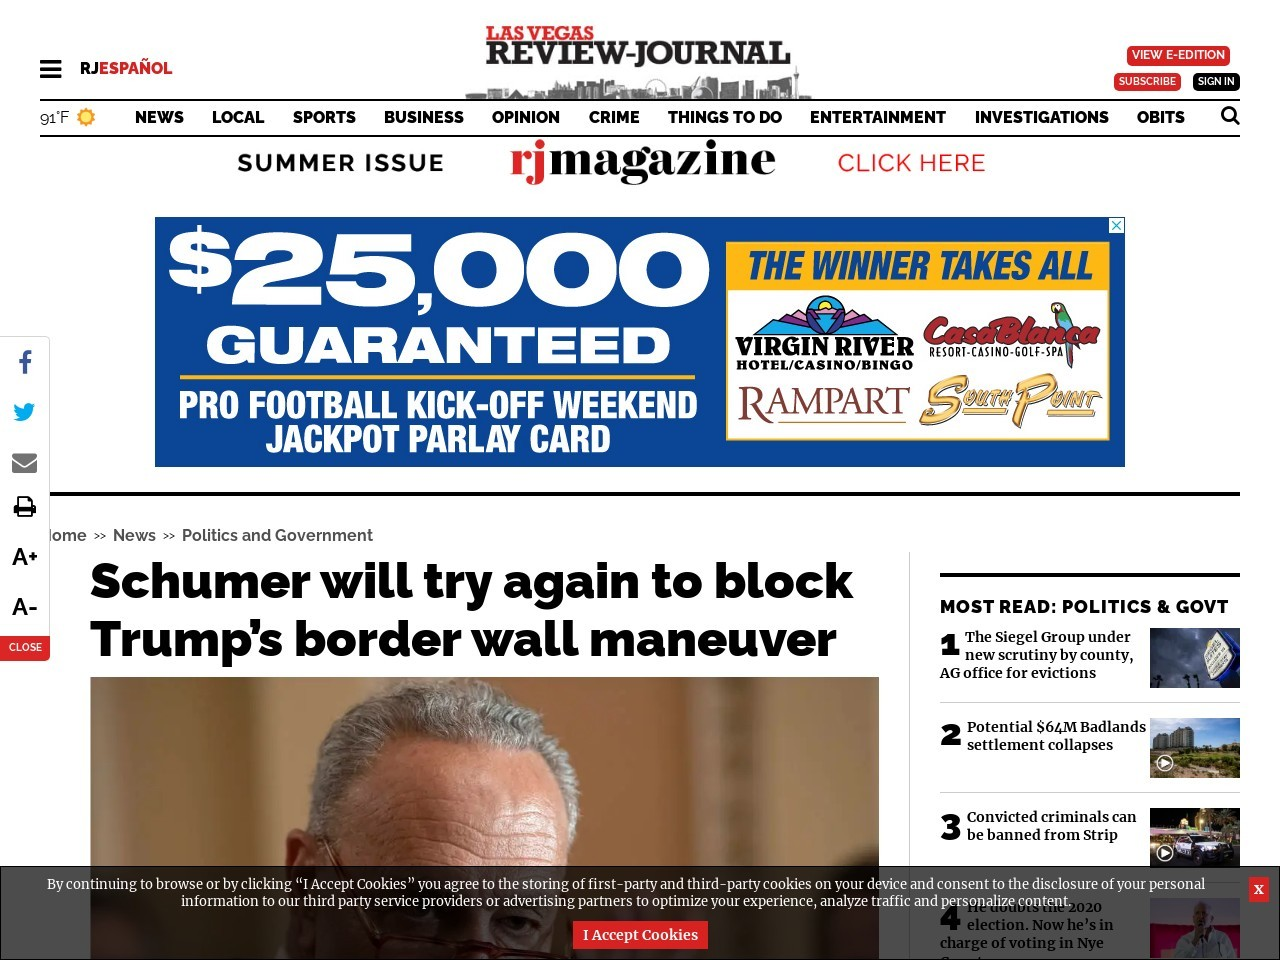 Schumer will try again to block Trump's border wall maneuver